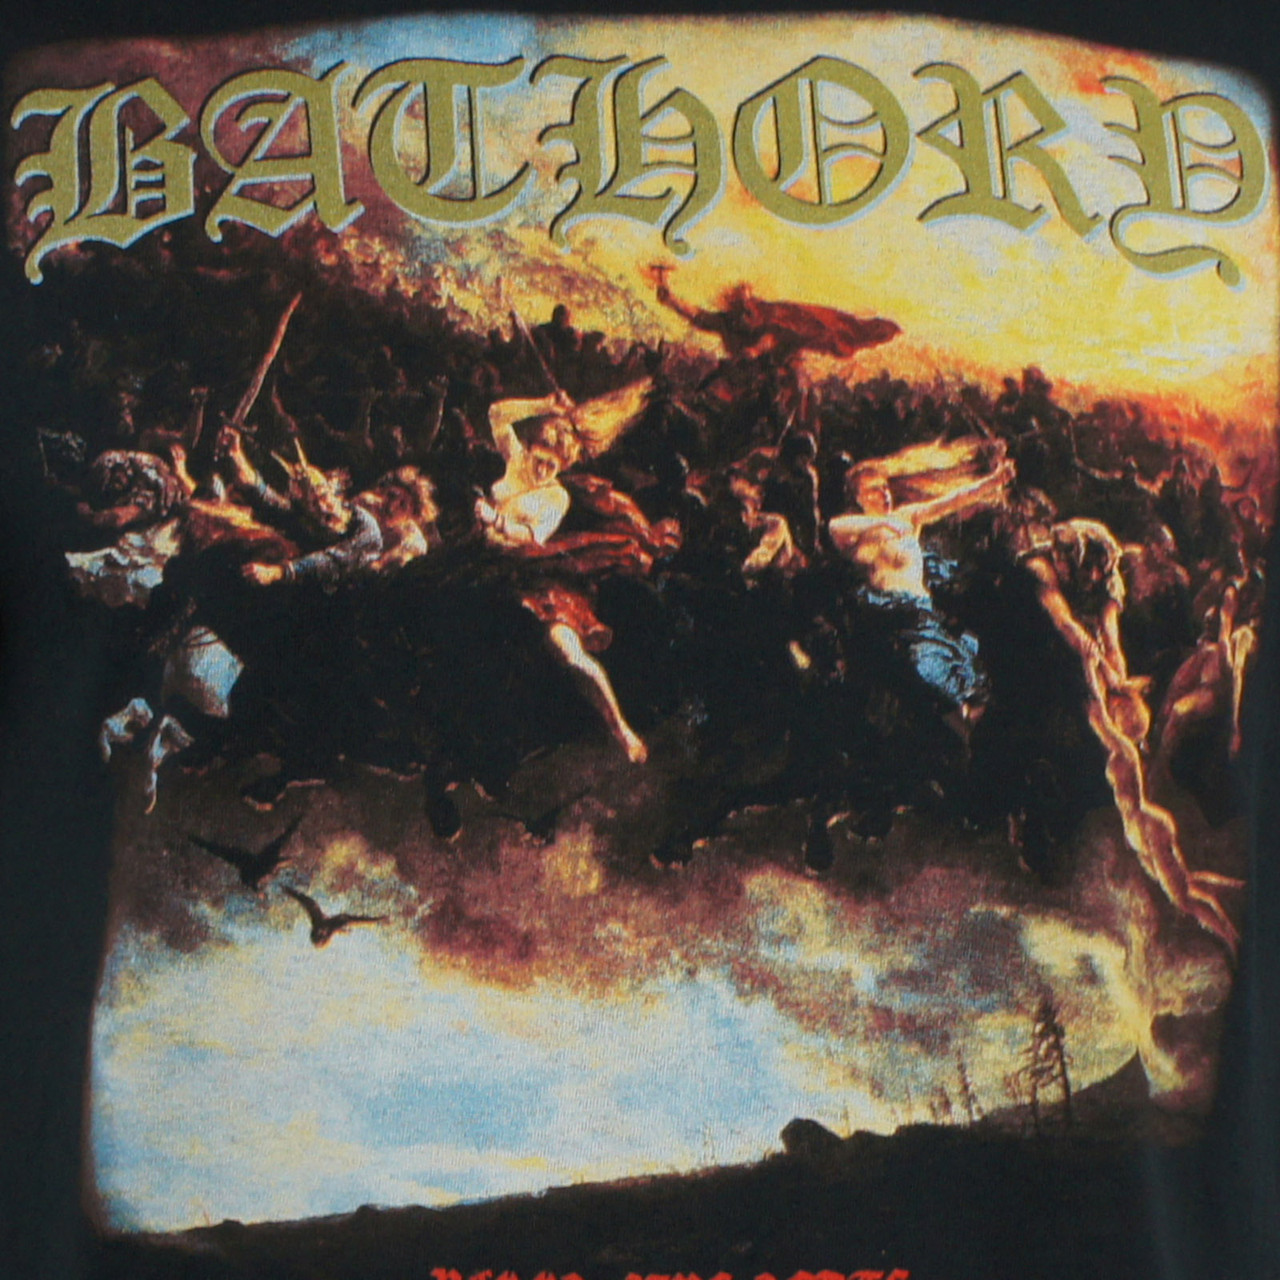 http://d3d71ba2asa5oz.cloudfront.net/12013655/images/10054246_1c%20bathory%20blood%20fire%20death-217.jpg